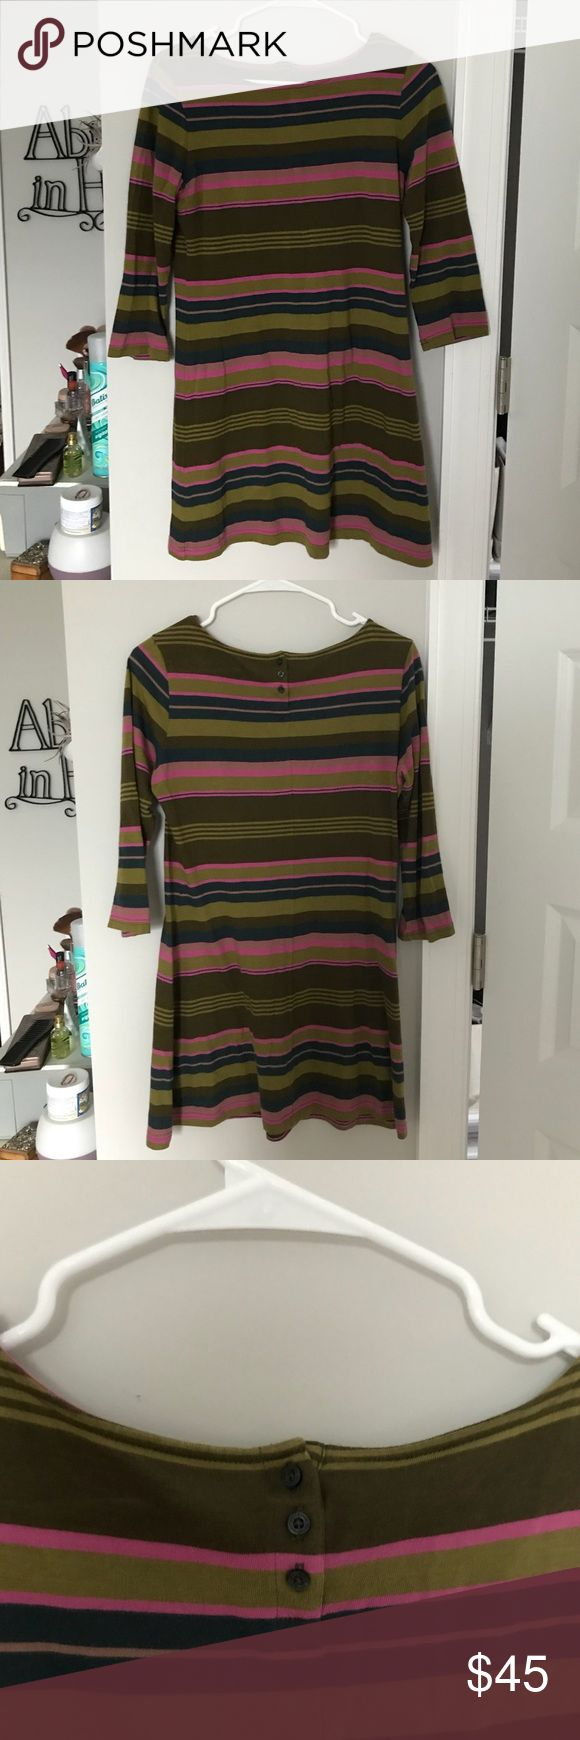 Striped Patagonia dress Green and pink striped Patagonia dress 3/4 length sleeves Patagonia Dresses Long Sleeve